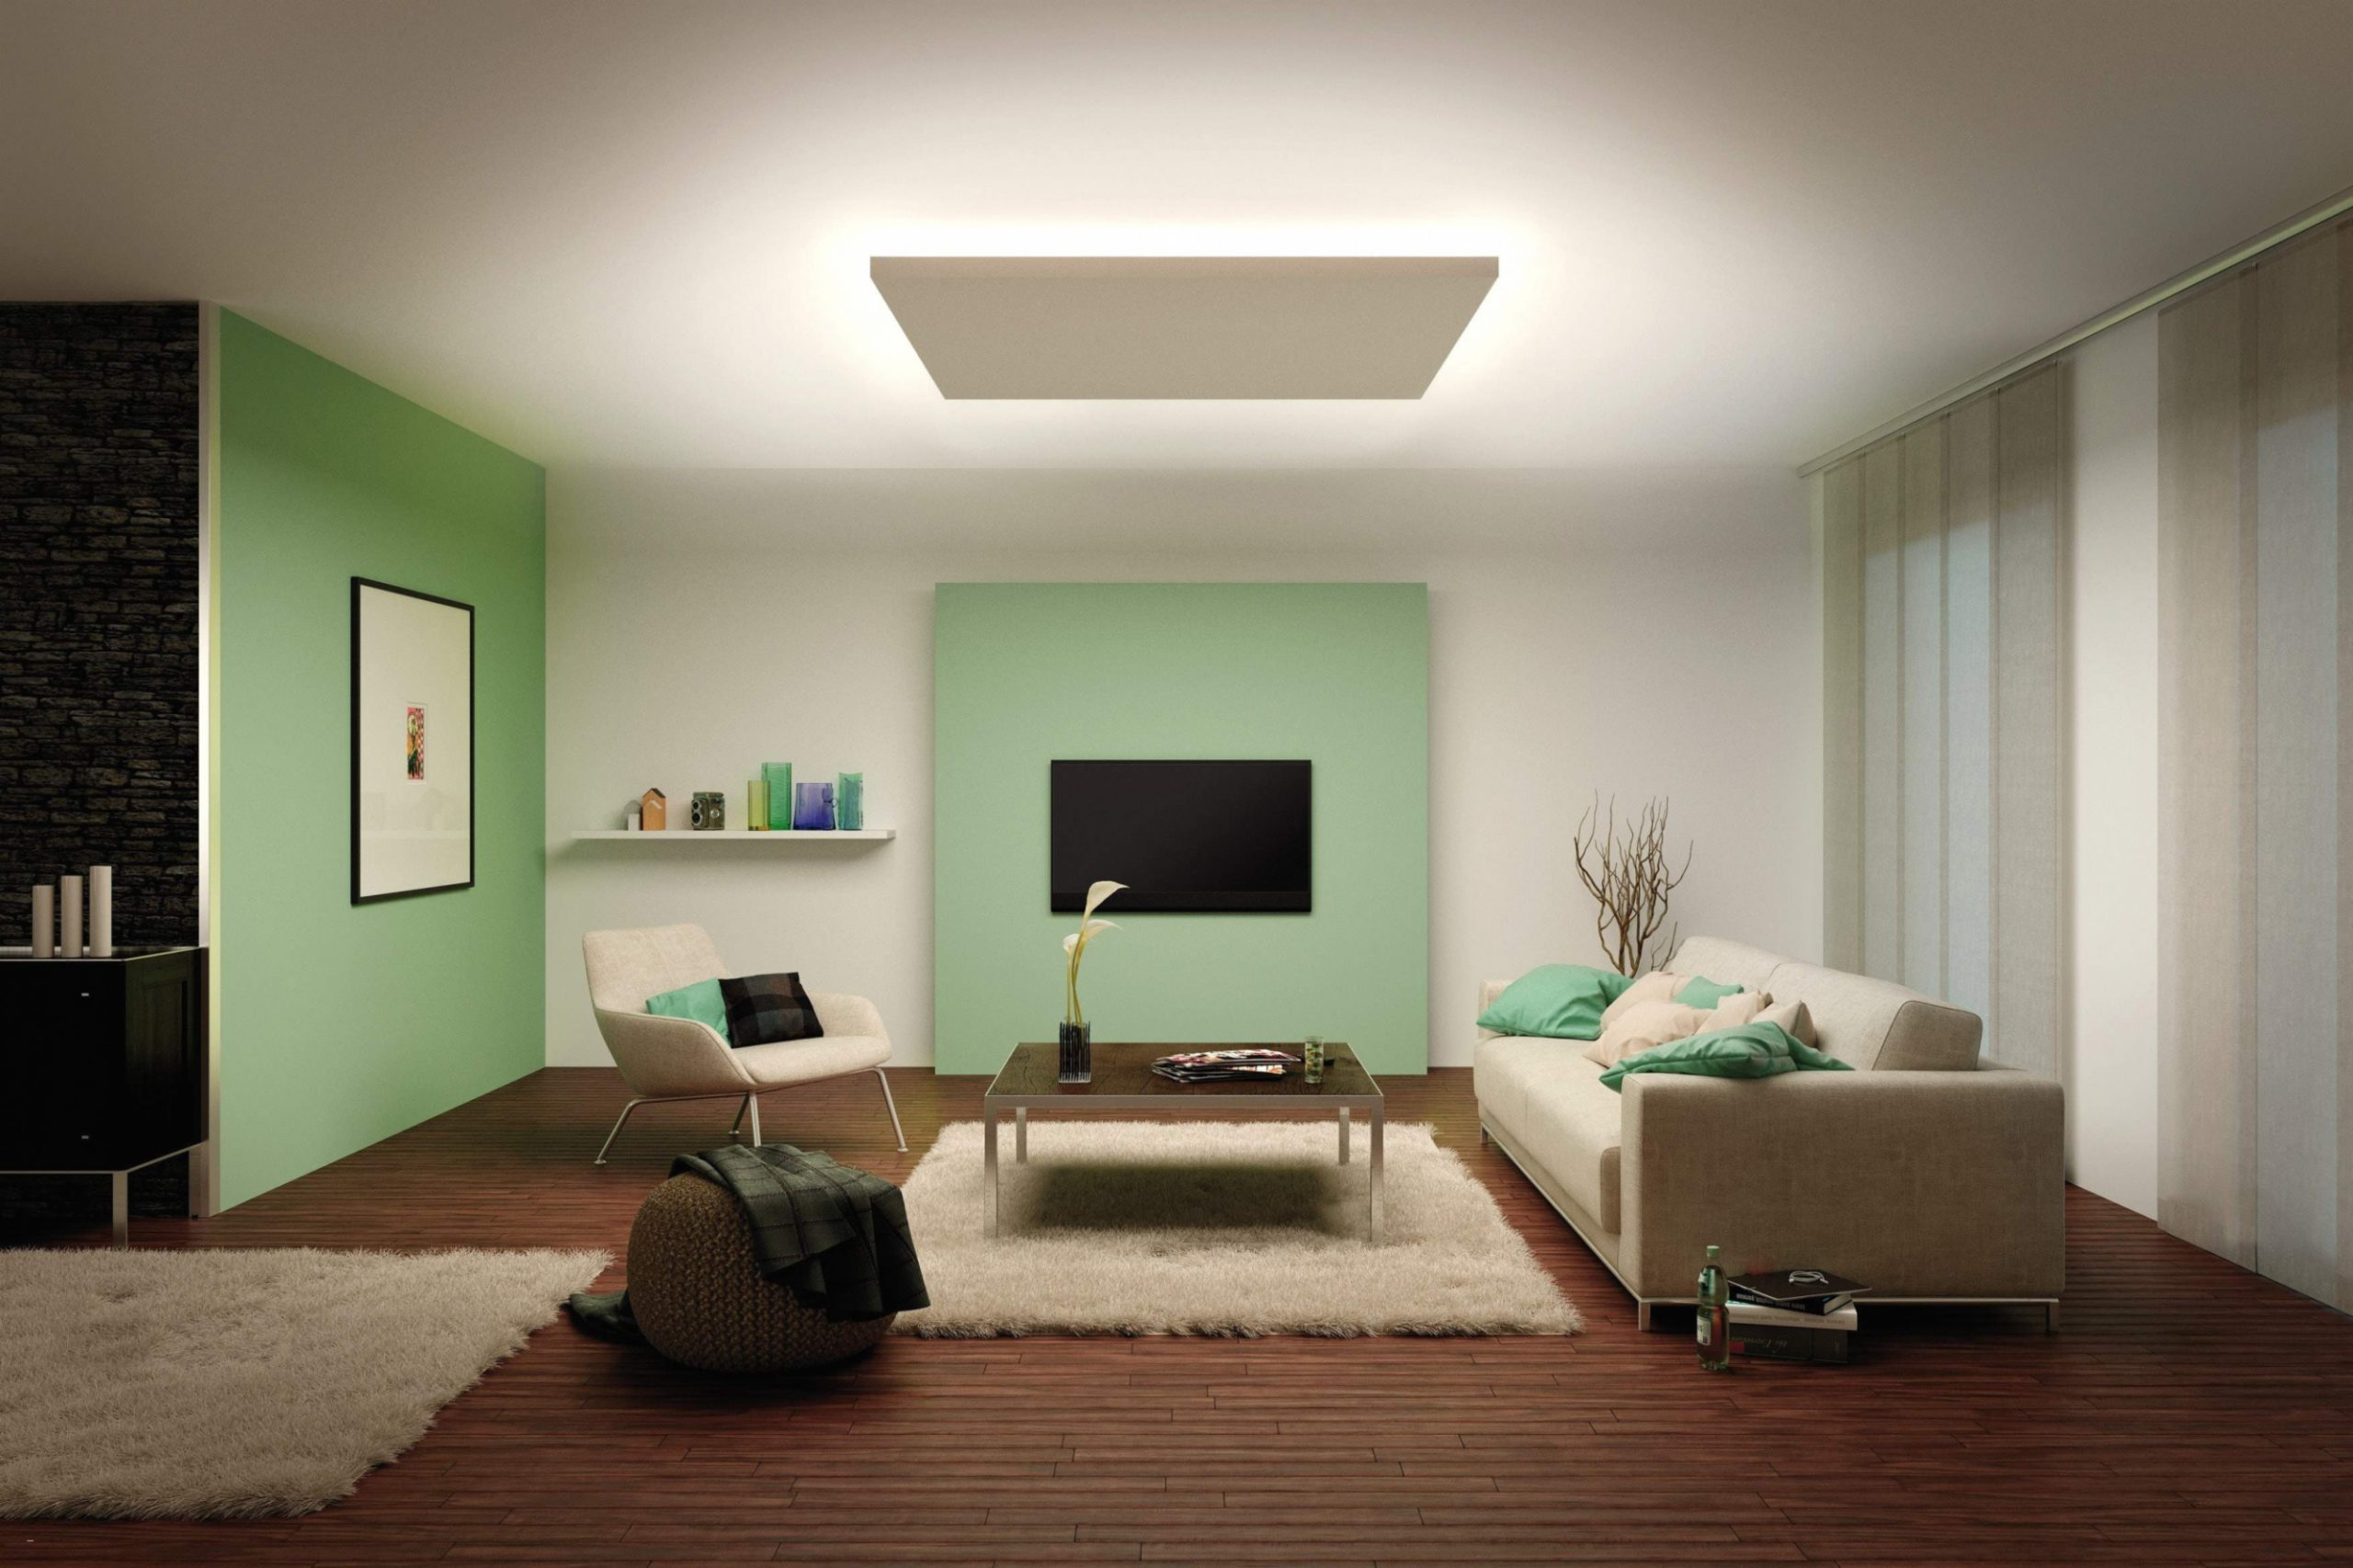 Full Size of 35 Chic Led Beleuchtung Tv Wand   Spots Im Wohnzimmer Wohnzimmer Indirekte Beleuchtung Wohnzimmer